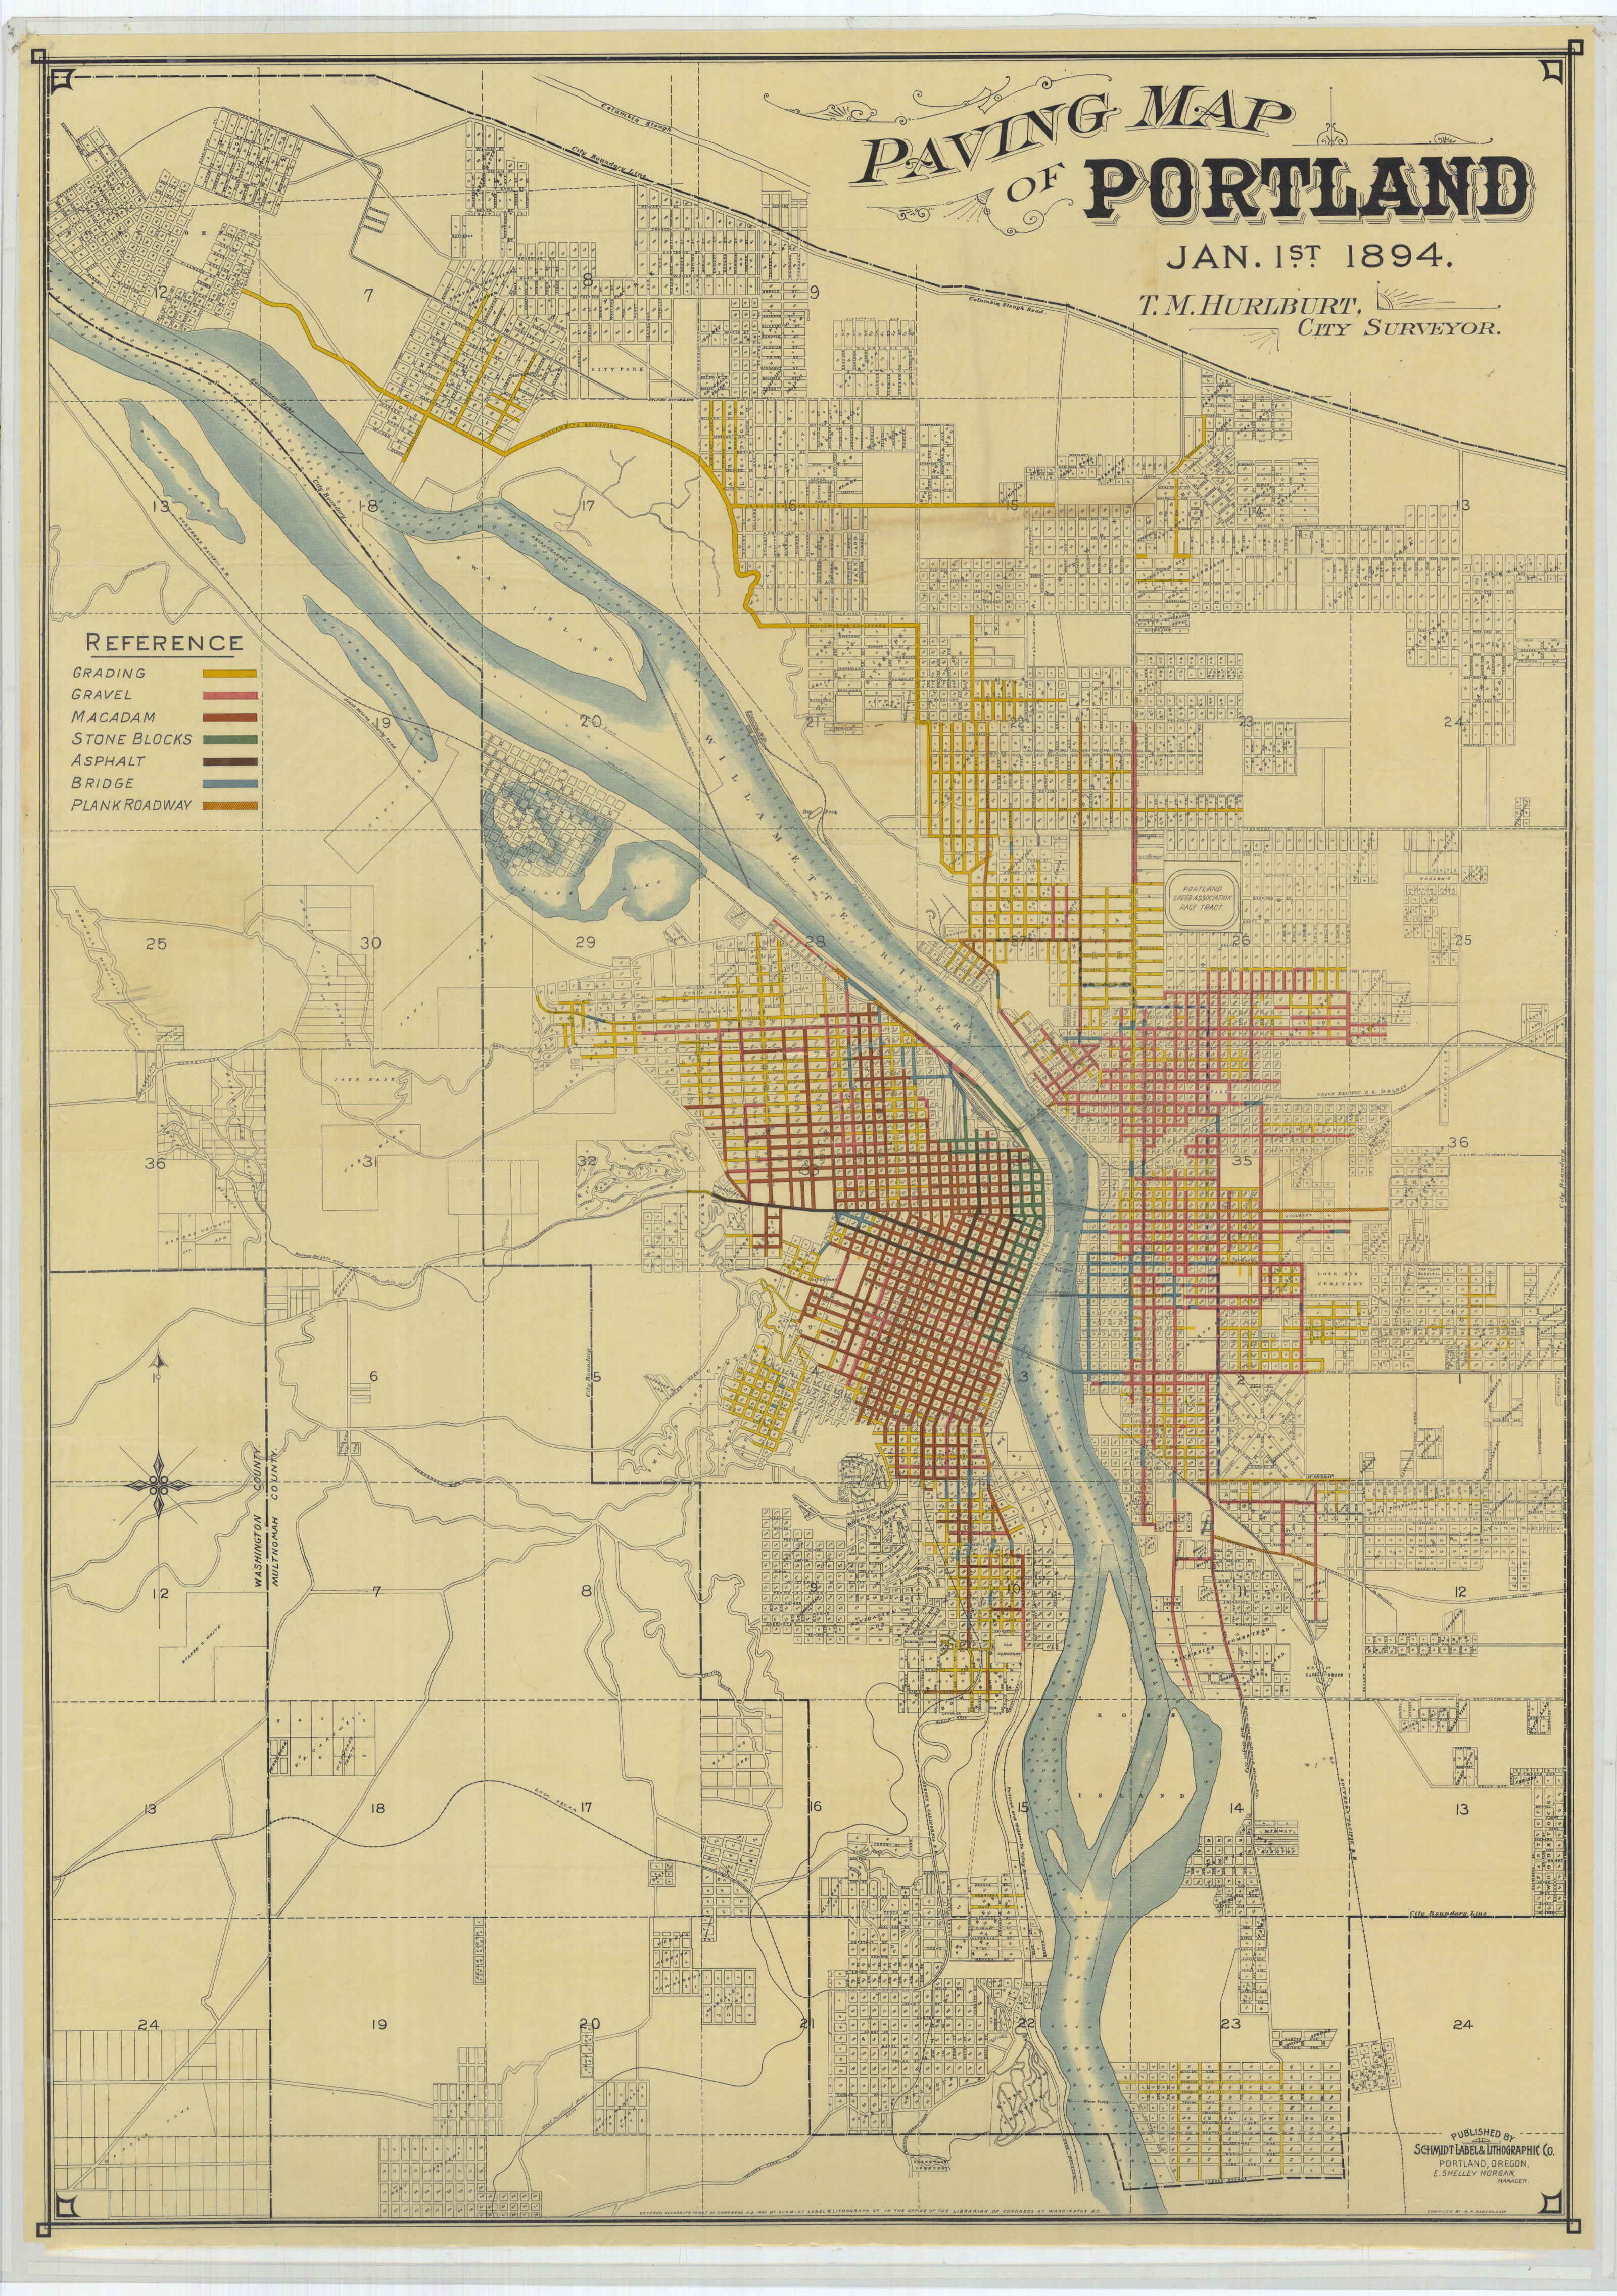 Best Images About Design Maps On Pinterest Behance - Portland oregon on the usa map